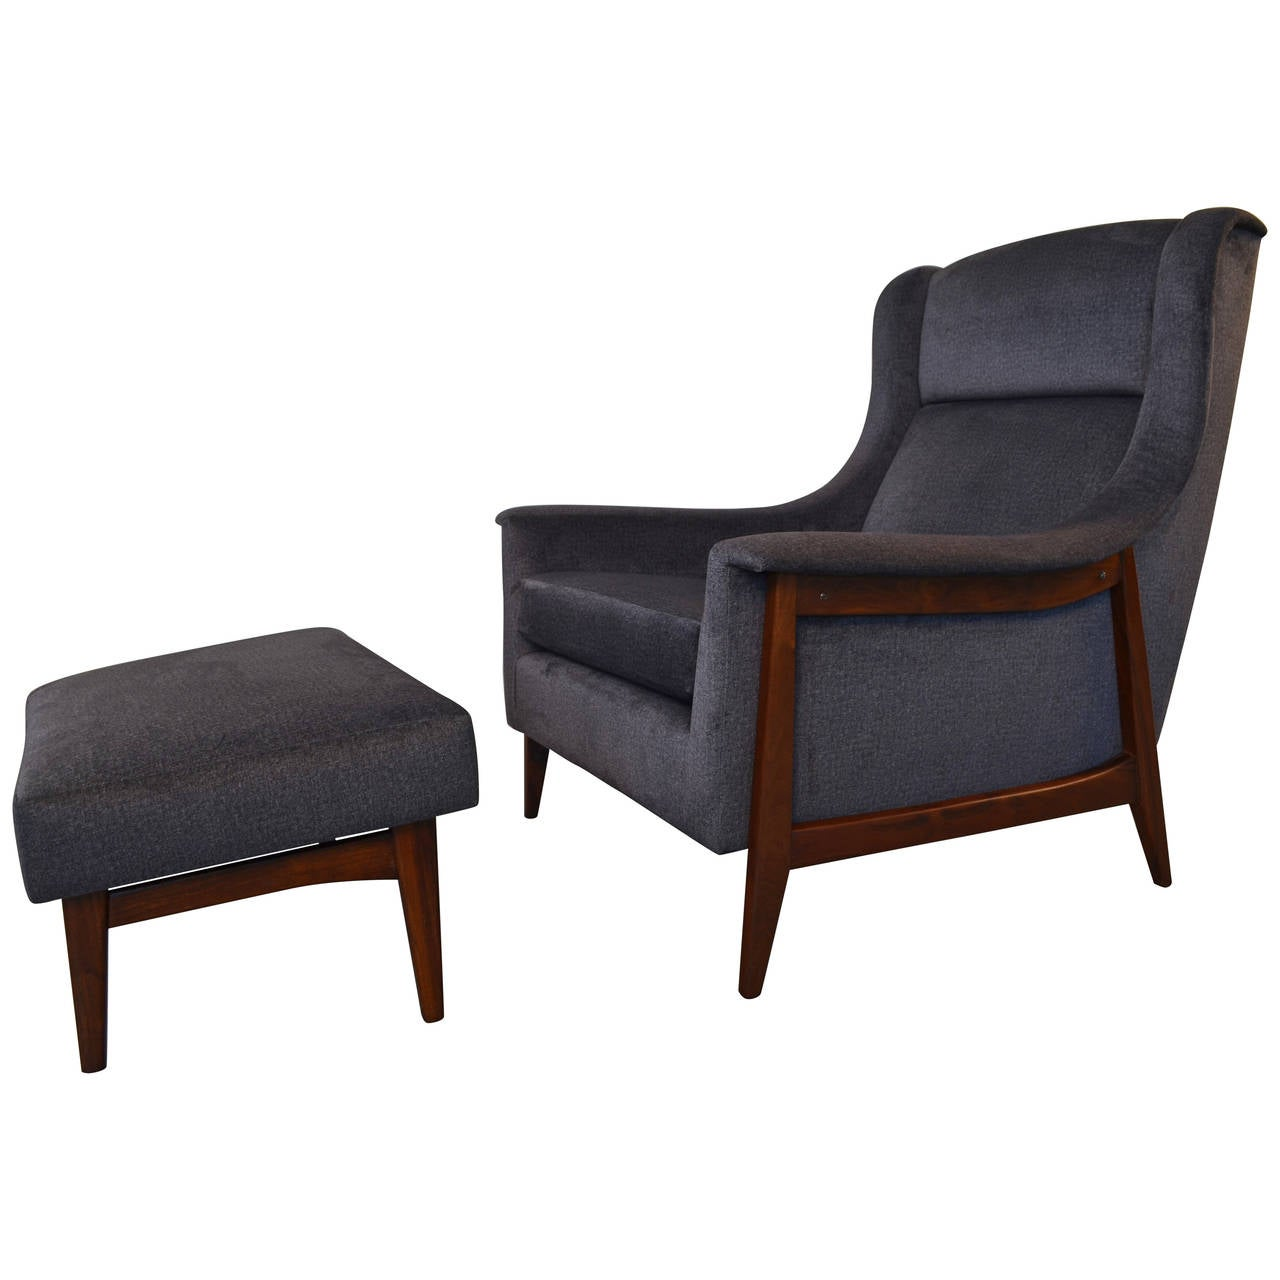 Danish Lounge Chair with Ottoman at 1stdibs